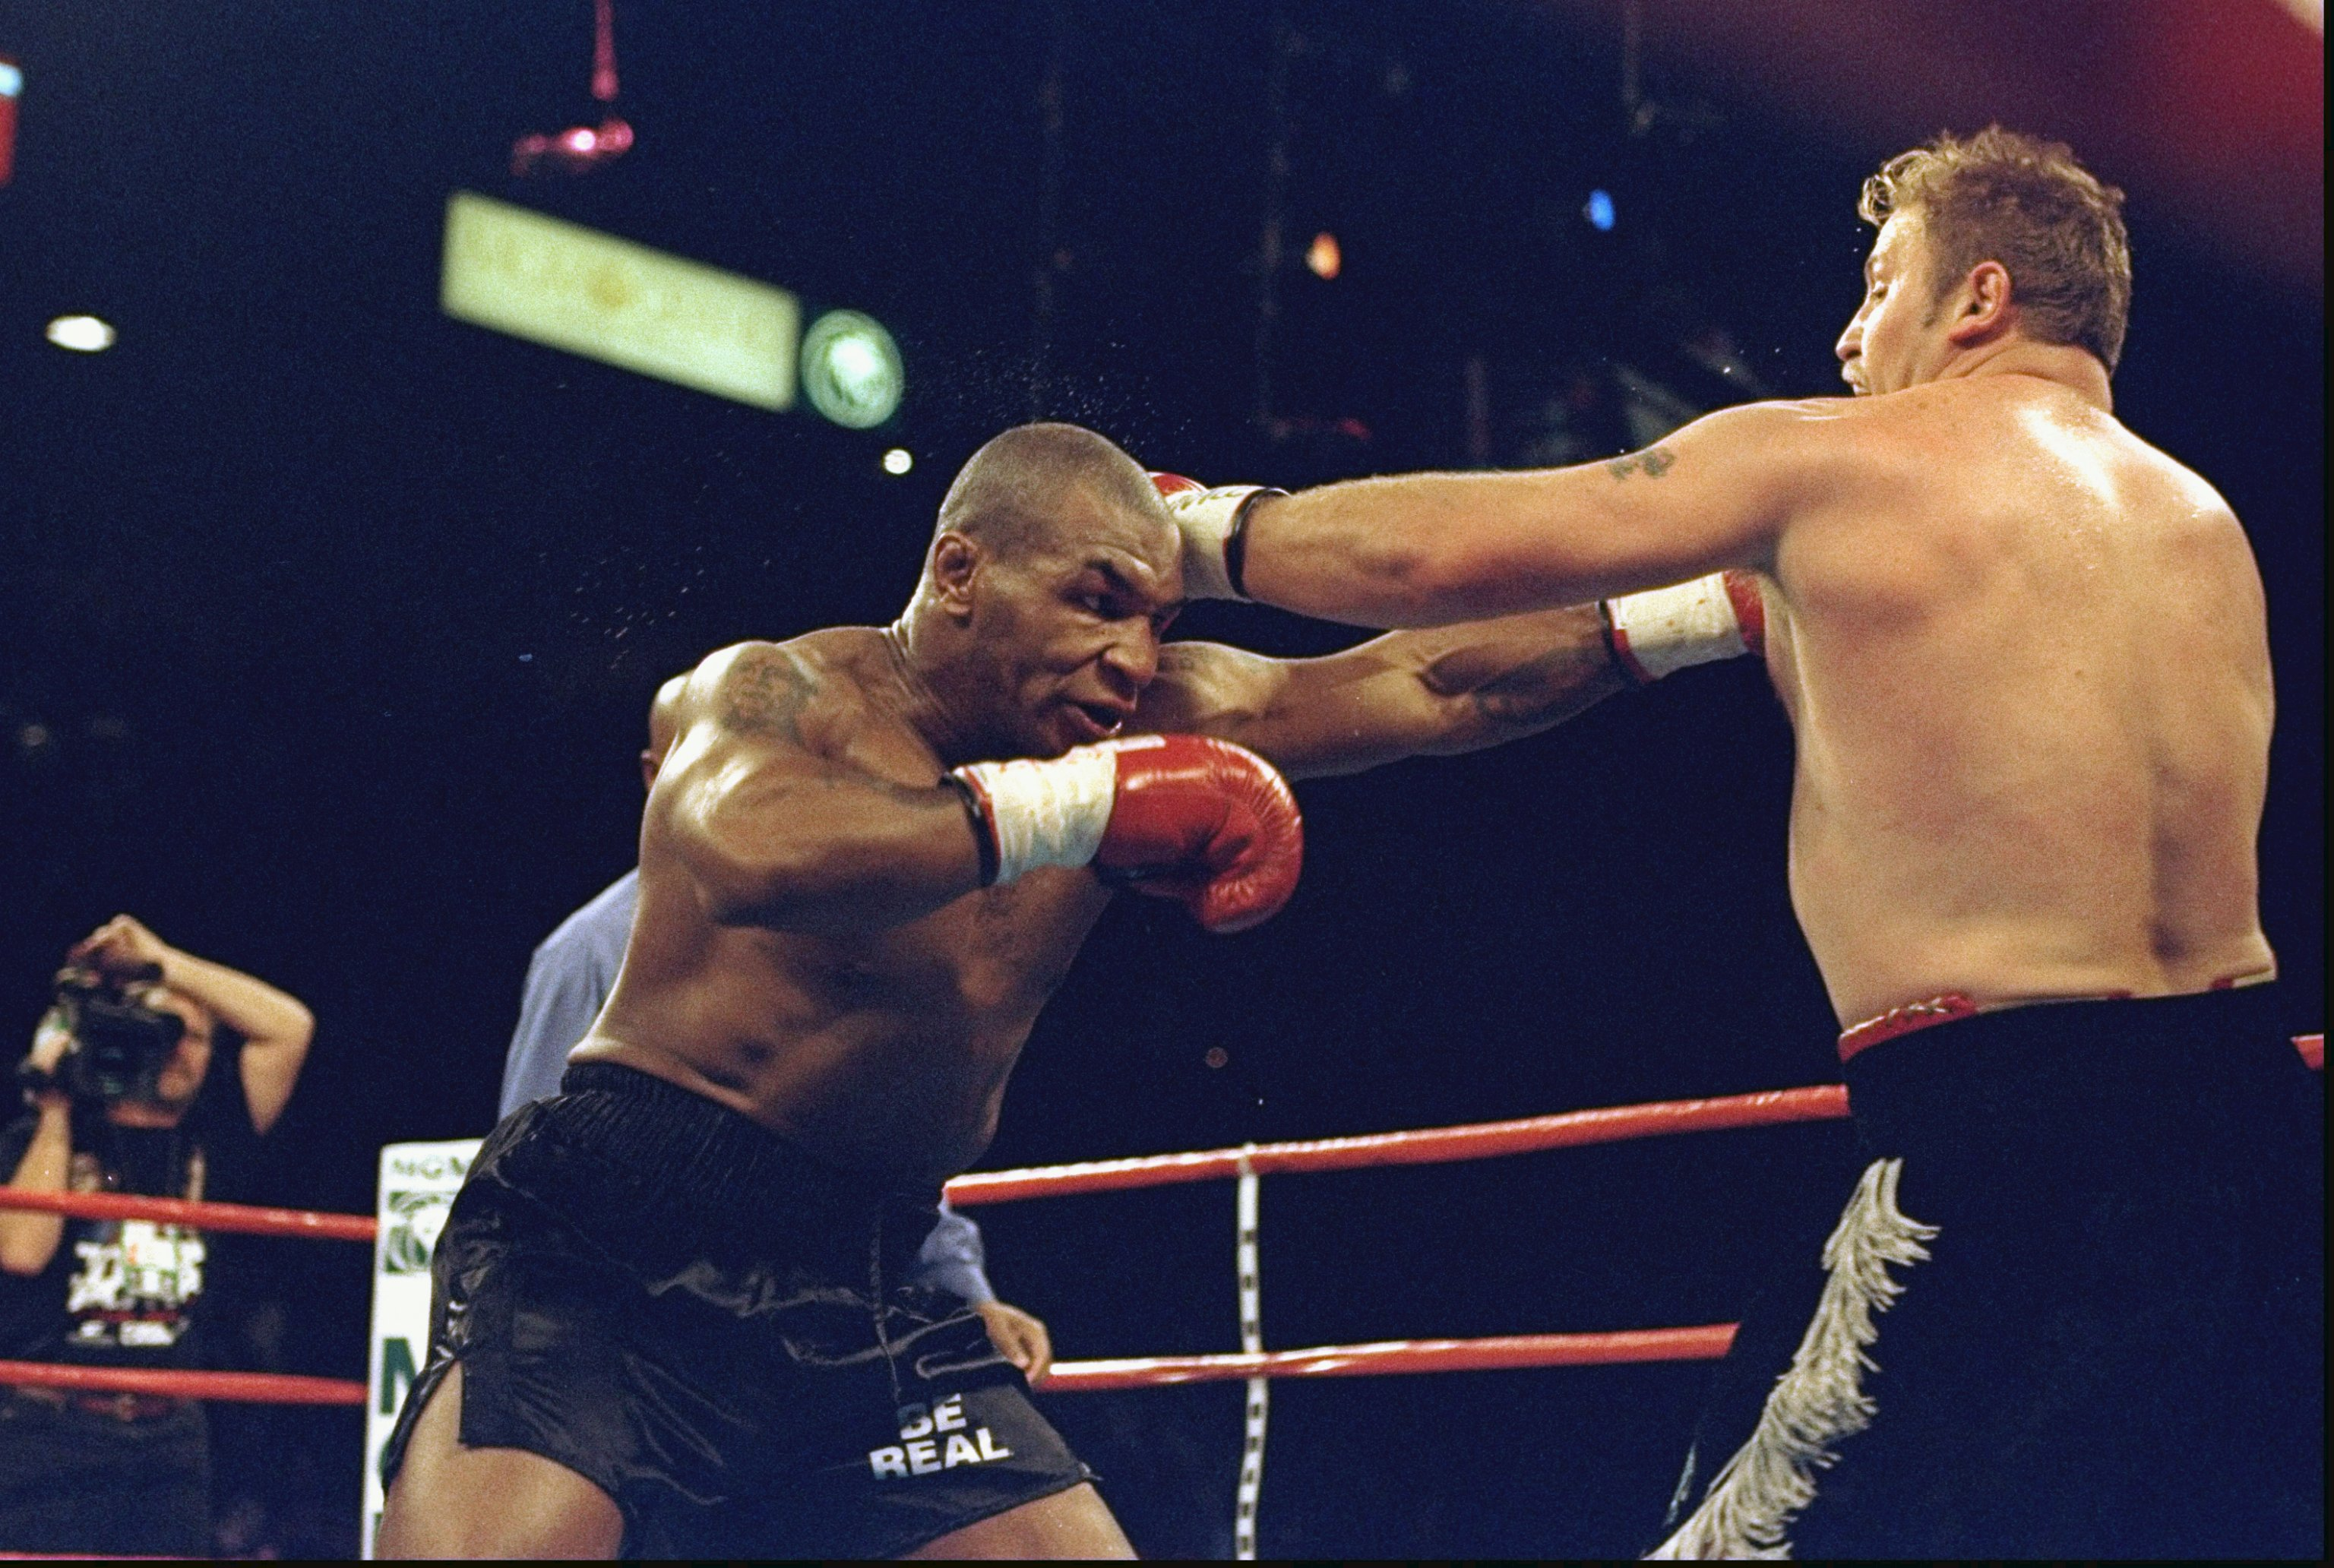 16 Jan 1999: Mike Tyson in action during his first fight against Francois Botha at the MGM Grand Garden Arena in Las Vegas, Nevada. Tyson defeated Botha by a counted out in the fifth round by the referee.